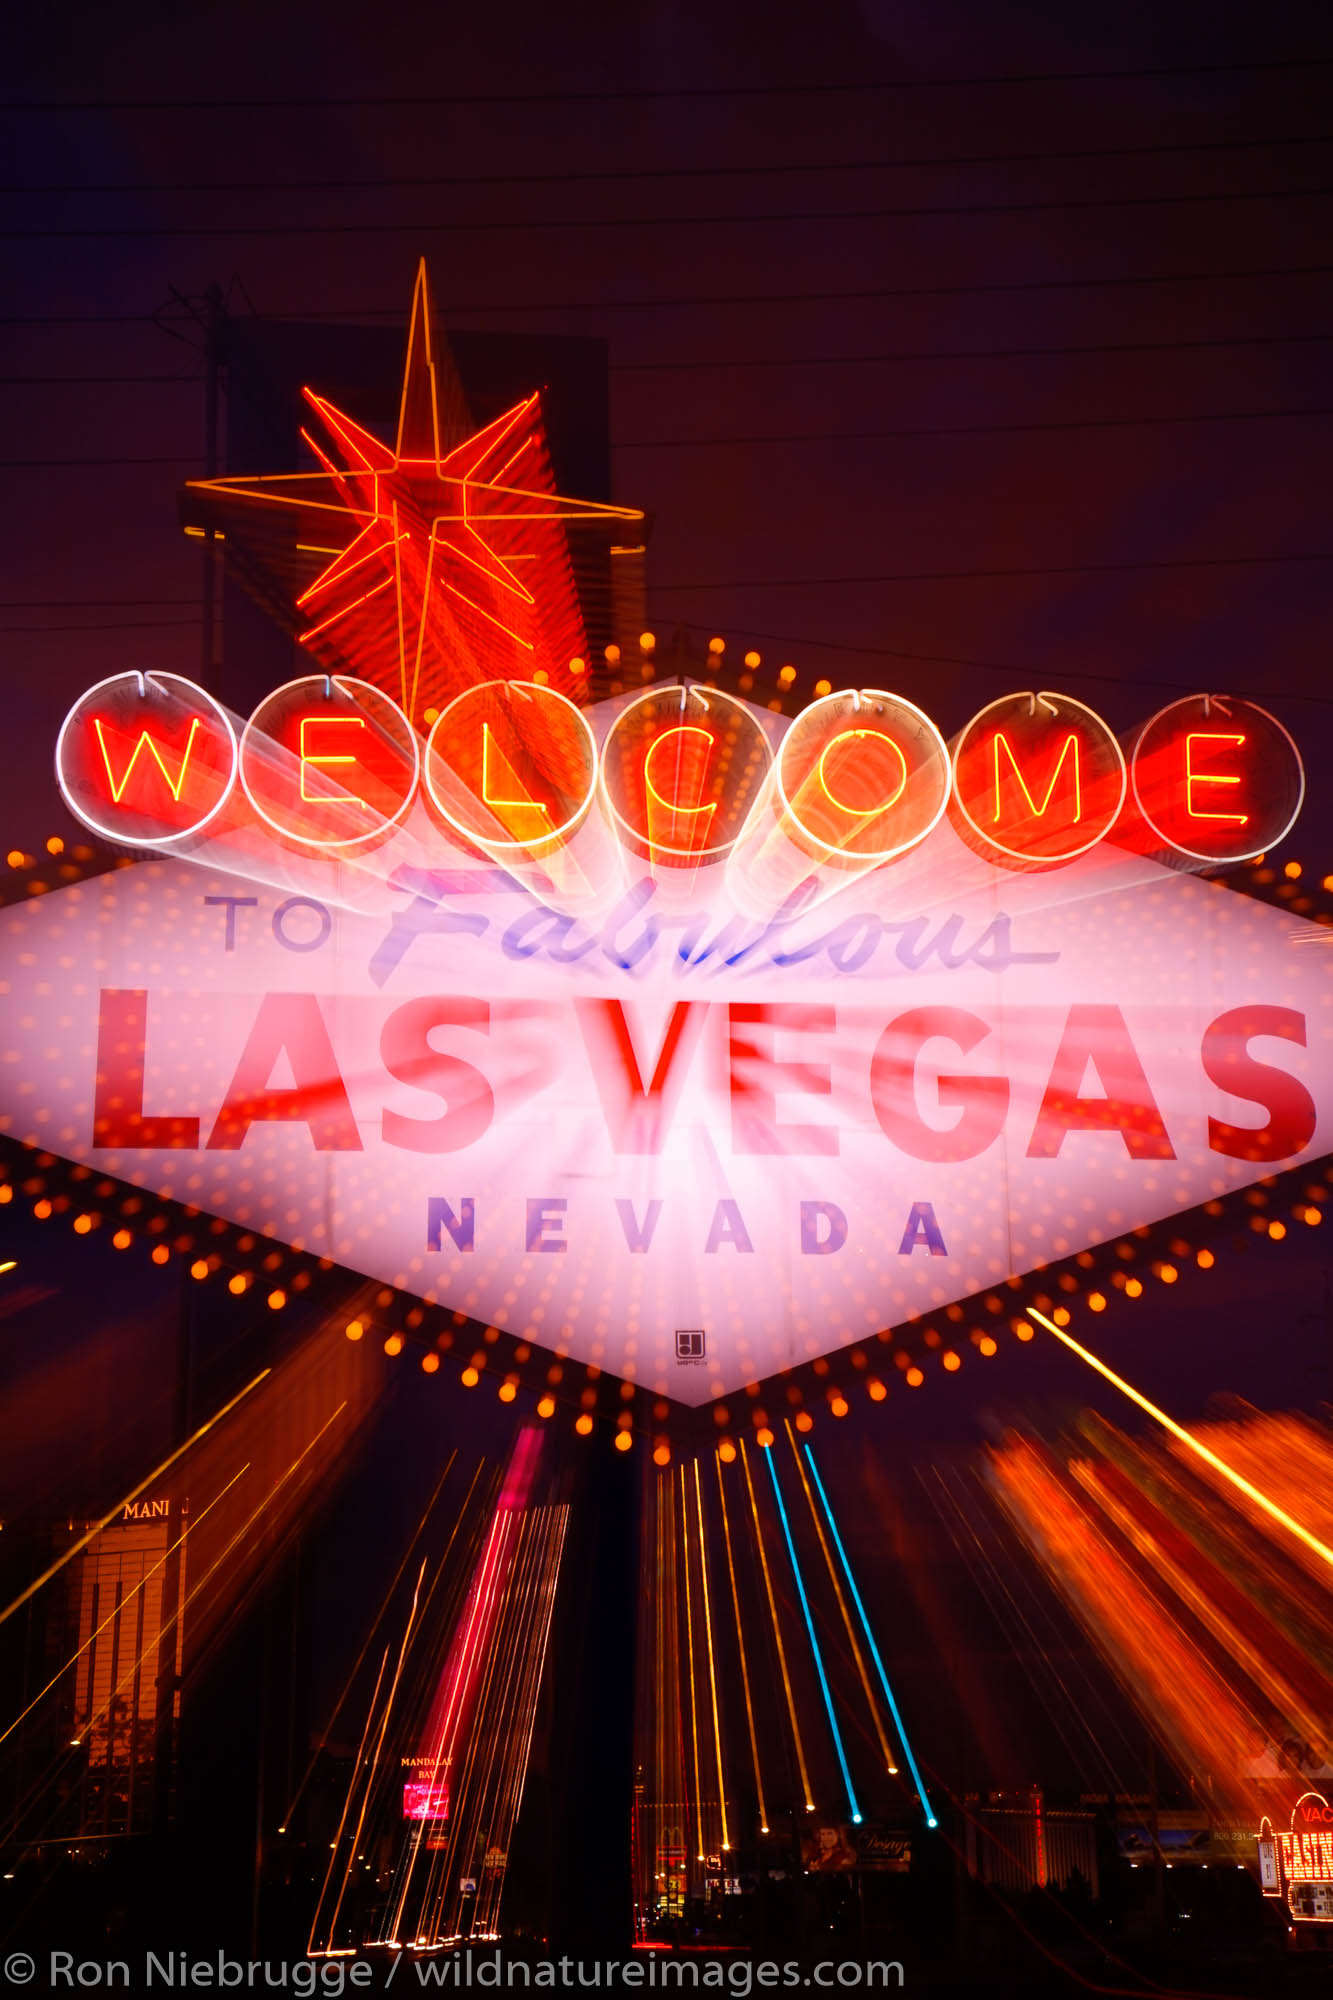 The Welcome to Las Vegas sign at night, Las Vegas, Nevada.